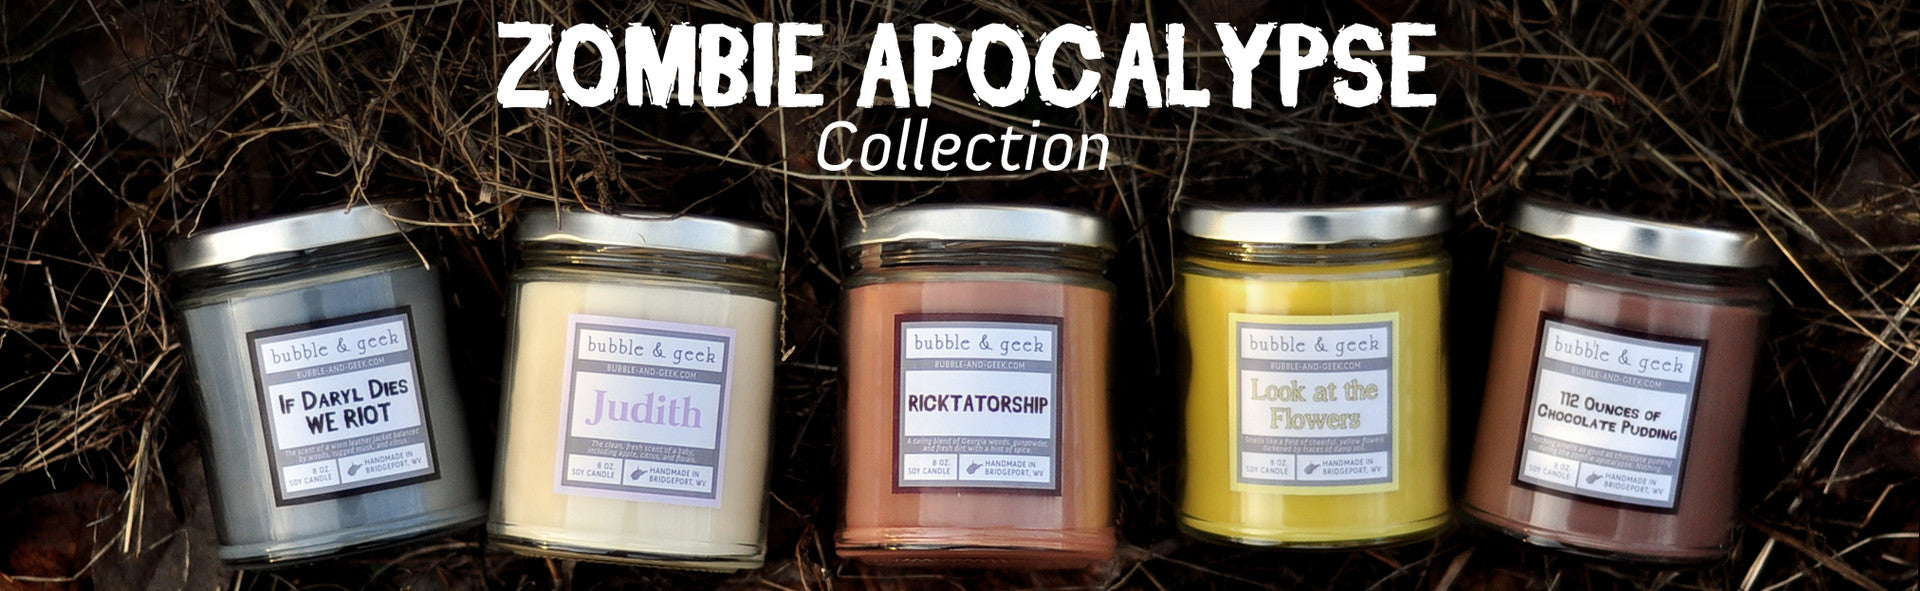 Zombie Apocalypse Collection